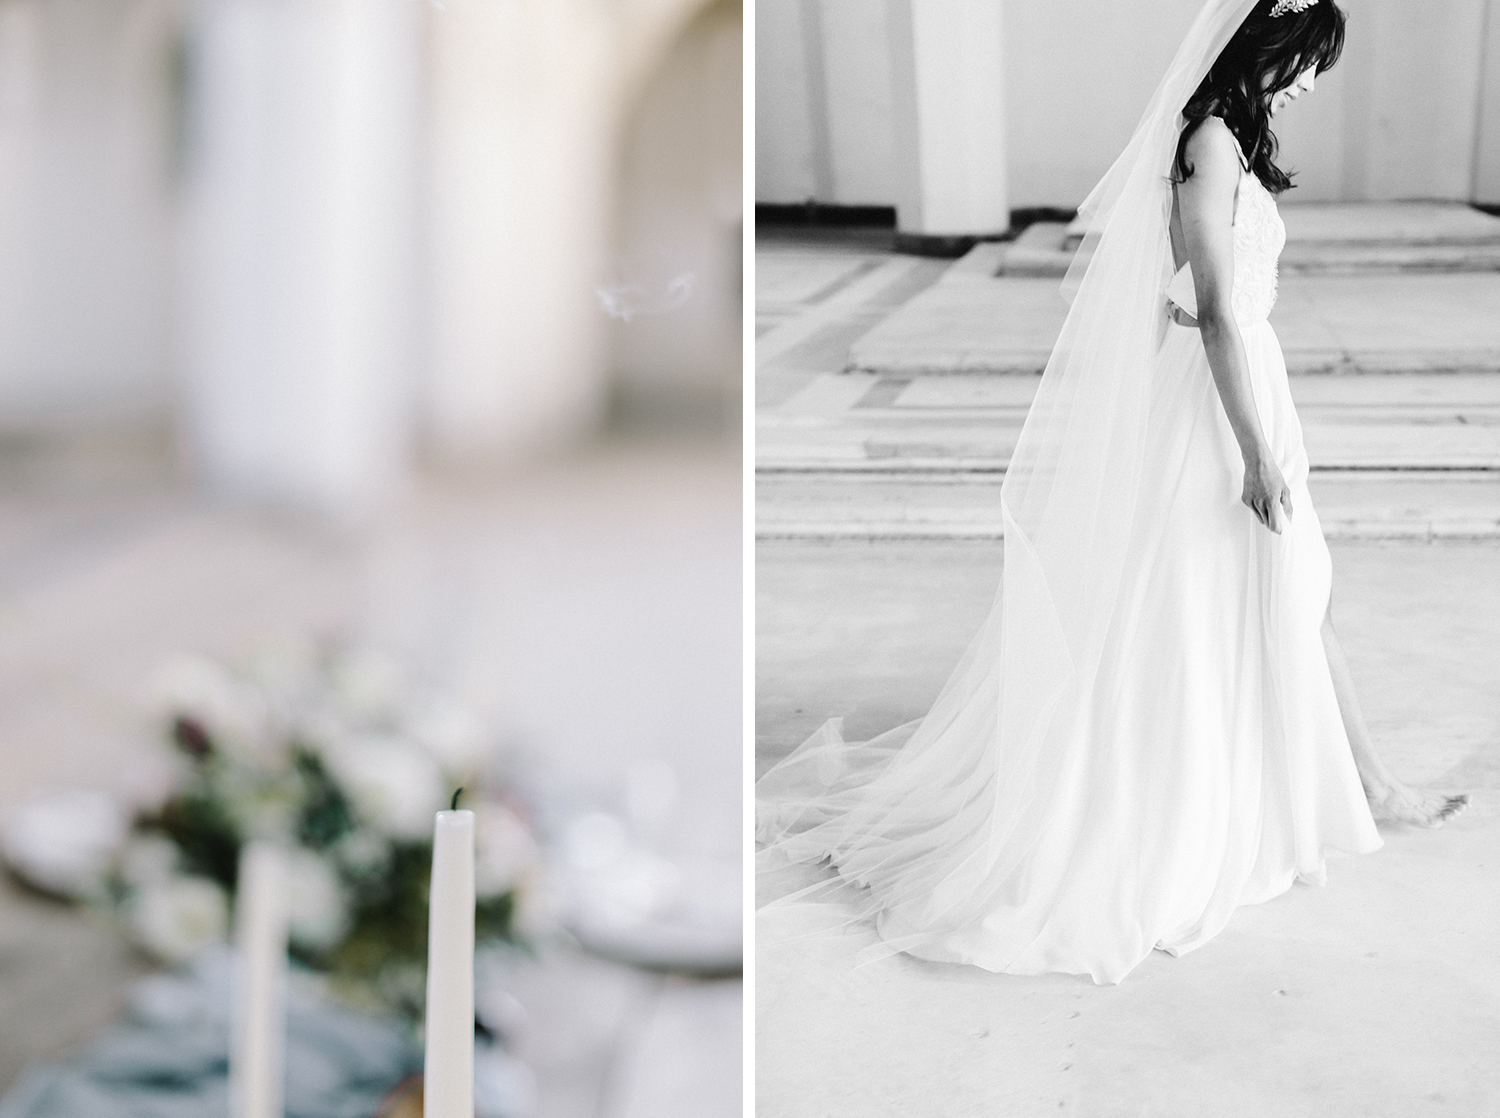 A bride in a long veil walks across the abandoned cathedral location of her destination wedding